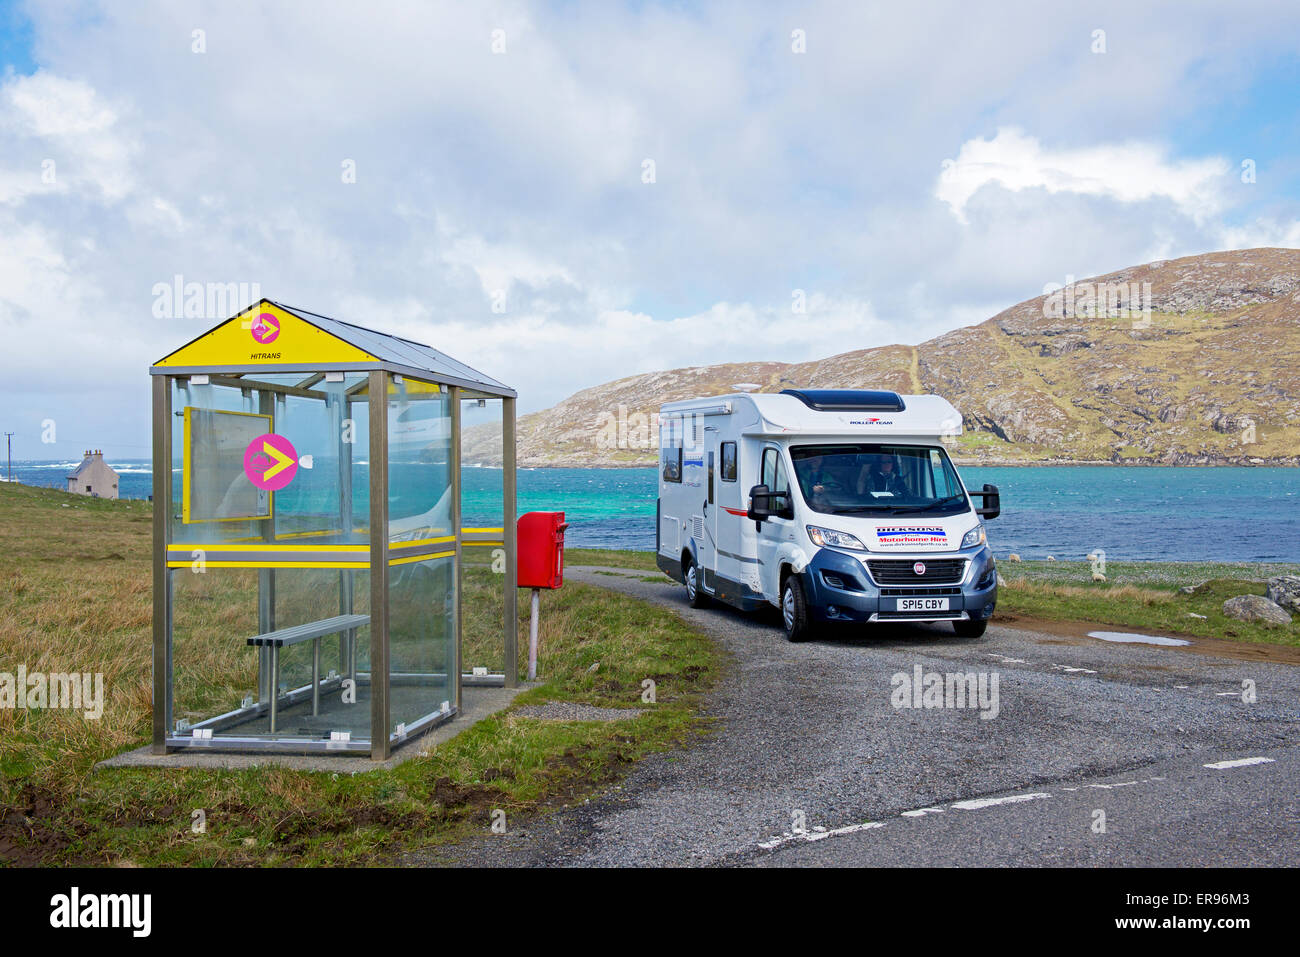 Motorhome and bus stop, Vatersay, Isle of Barra, Outer Hebrides, Scotland UK - Stock Image